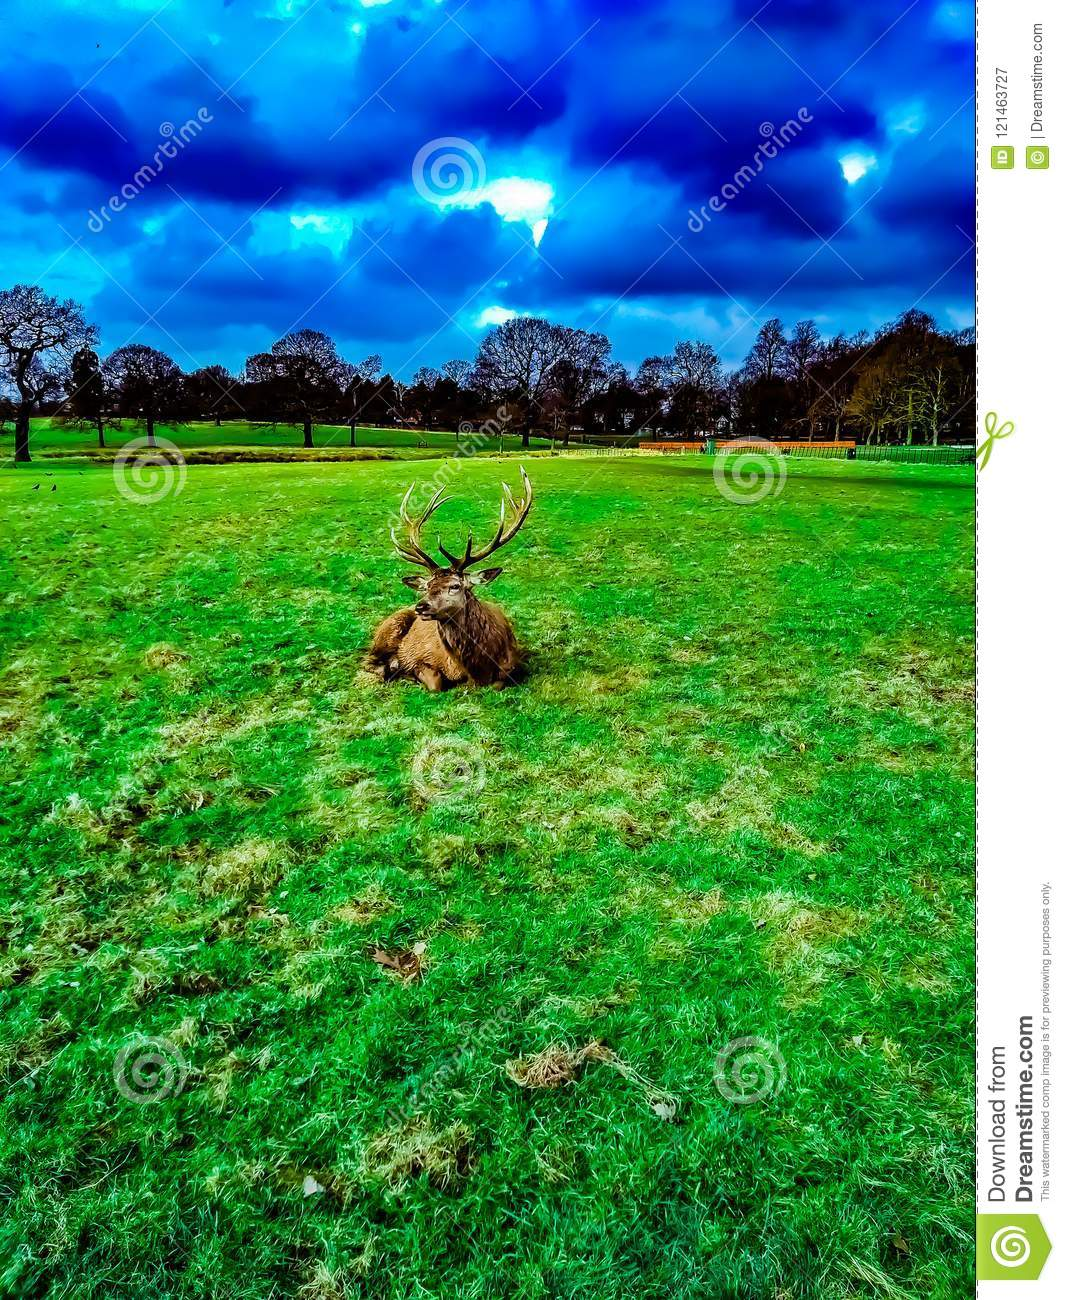 Deer lying on the grass in the Wollaton Hall Park in Nottingham, United Kingdom.